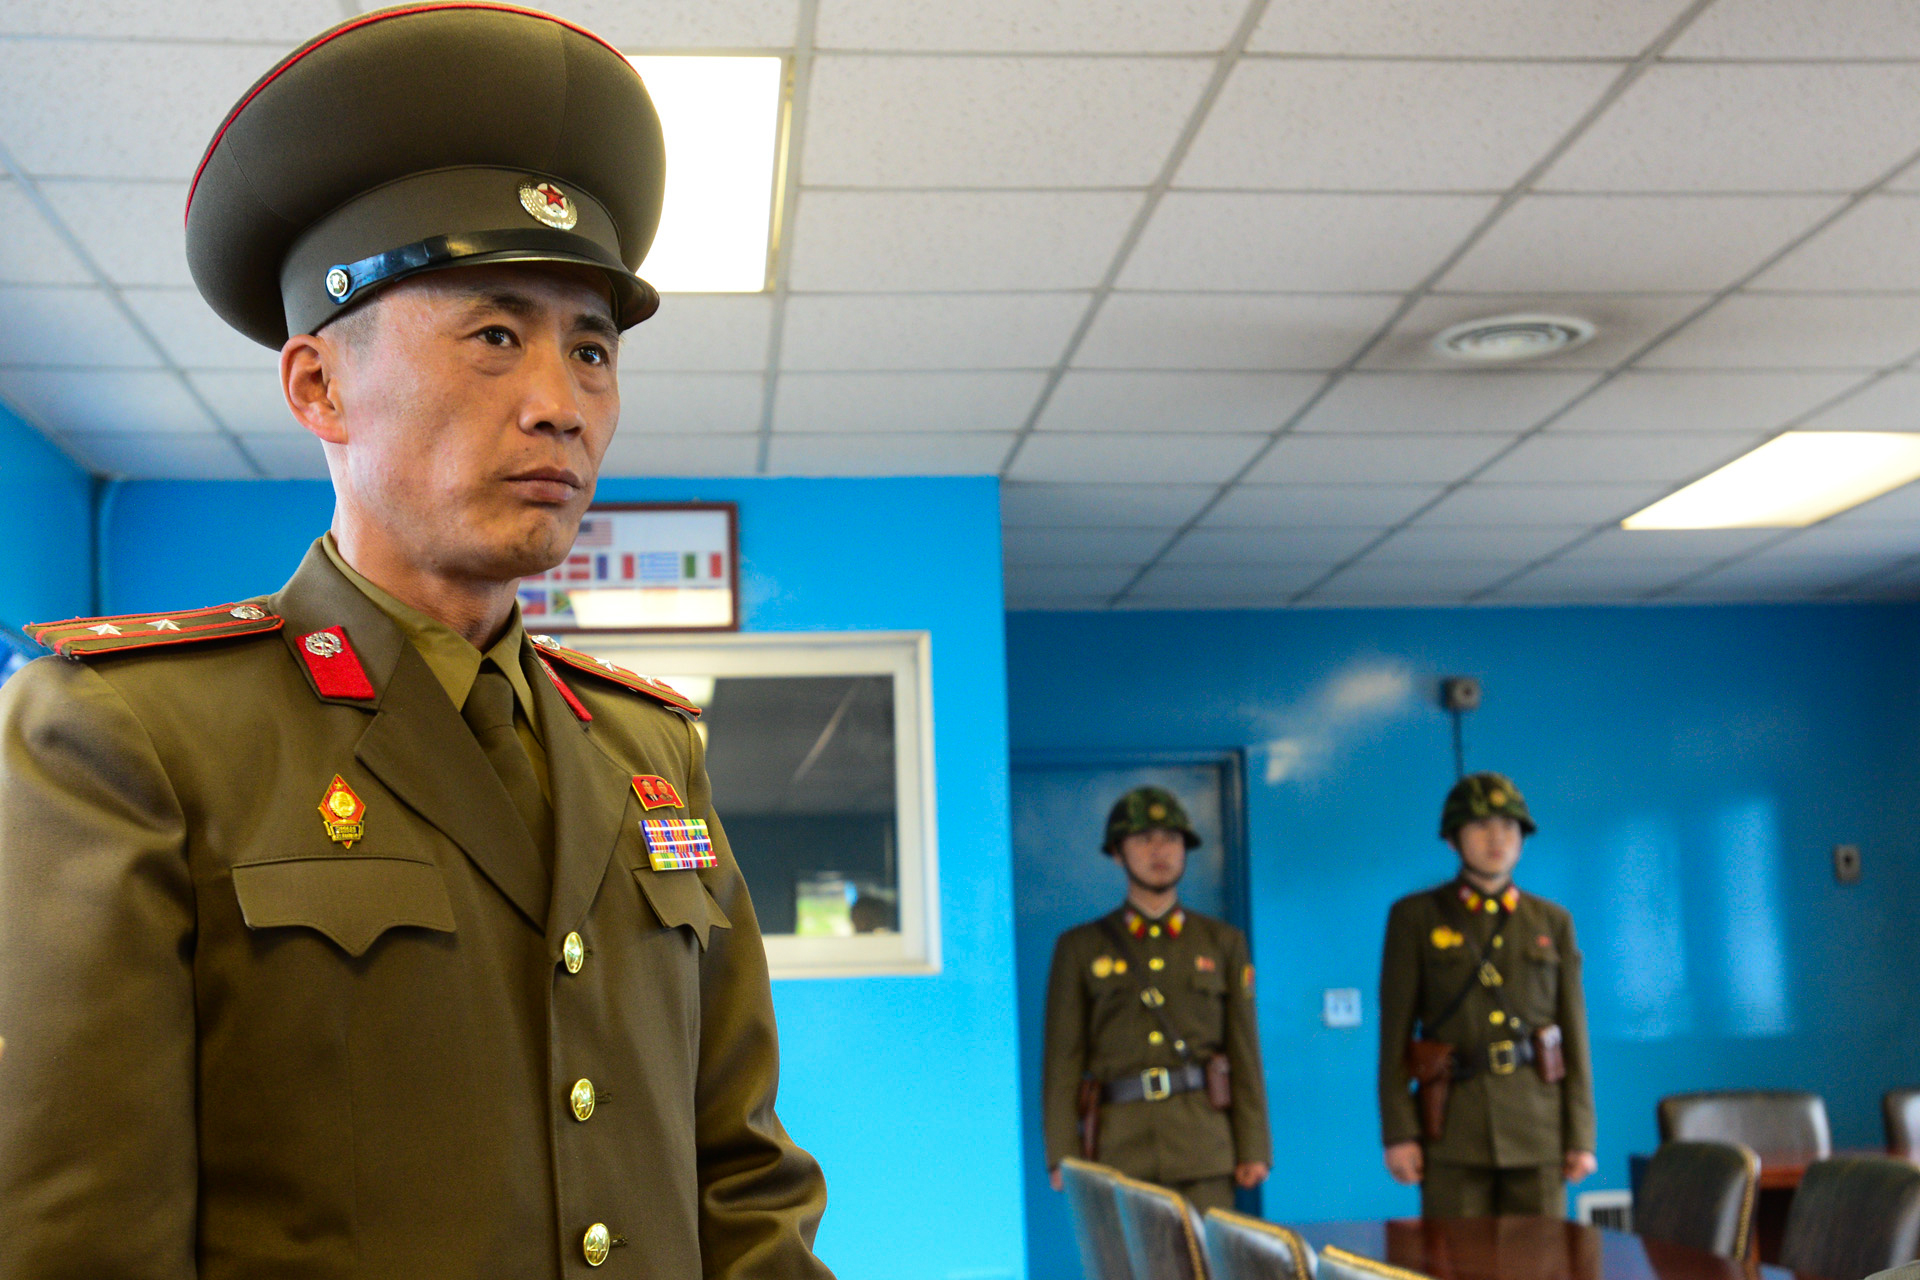 A North Korean officer and soliders stand guard at the old negotiation room at the De-Militarized Zone on the border with South Korea.